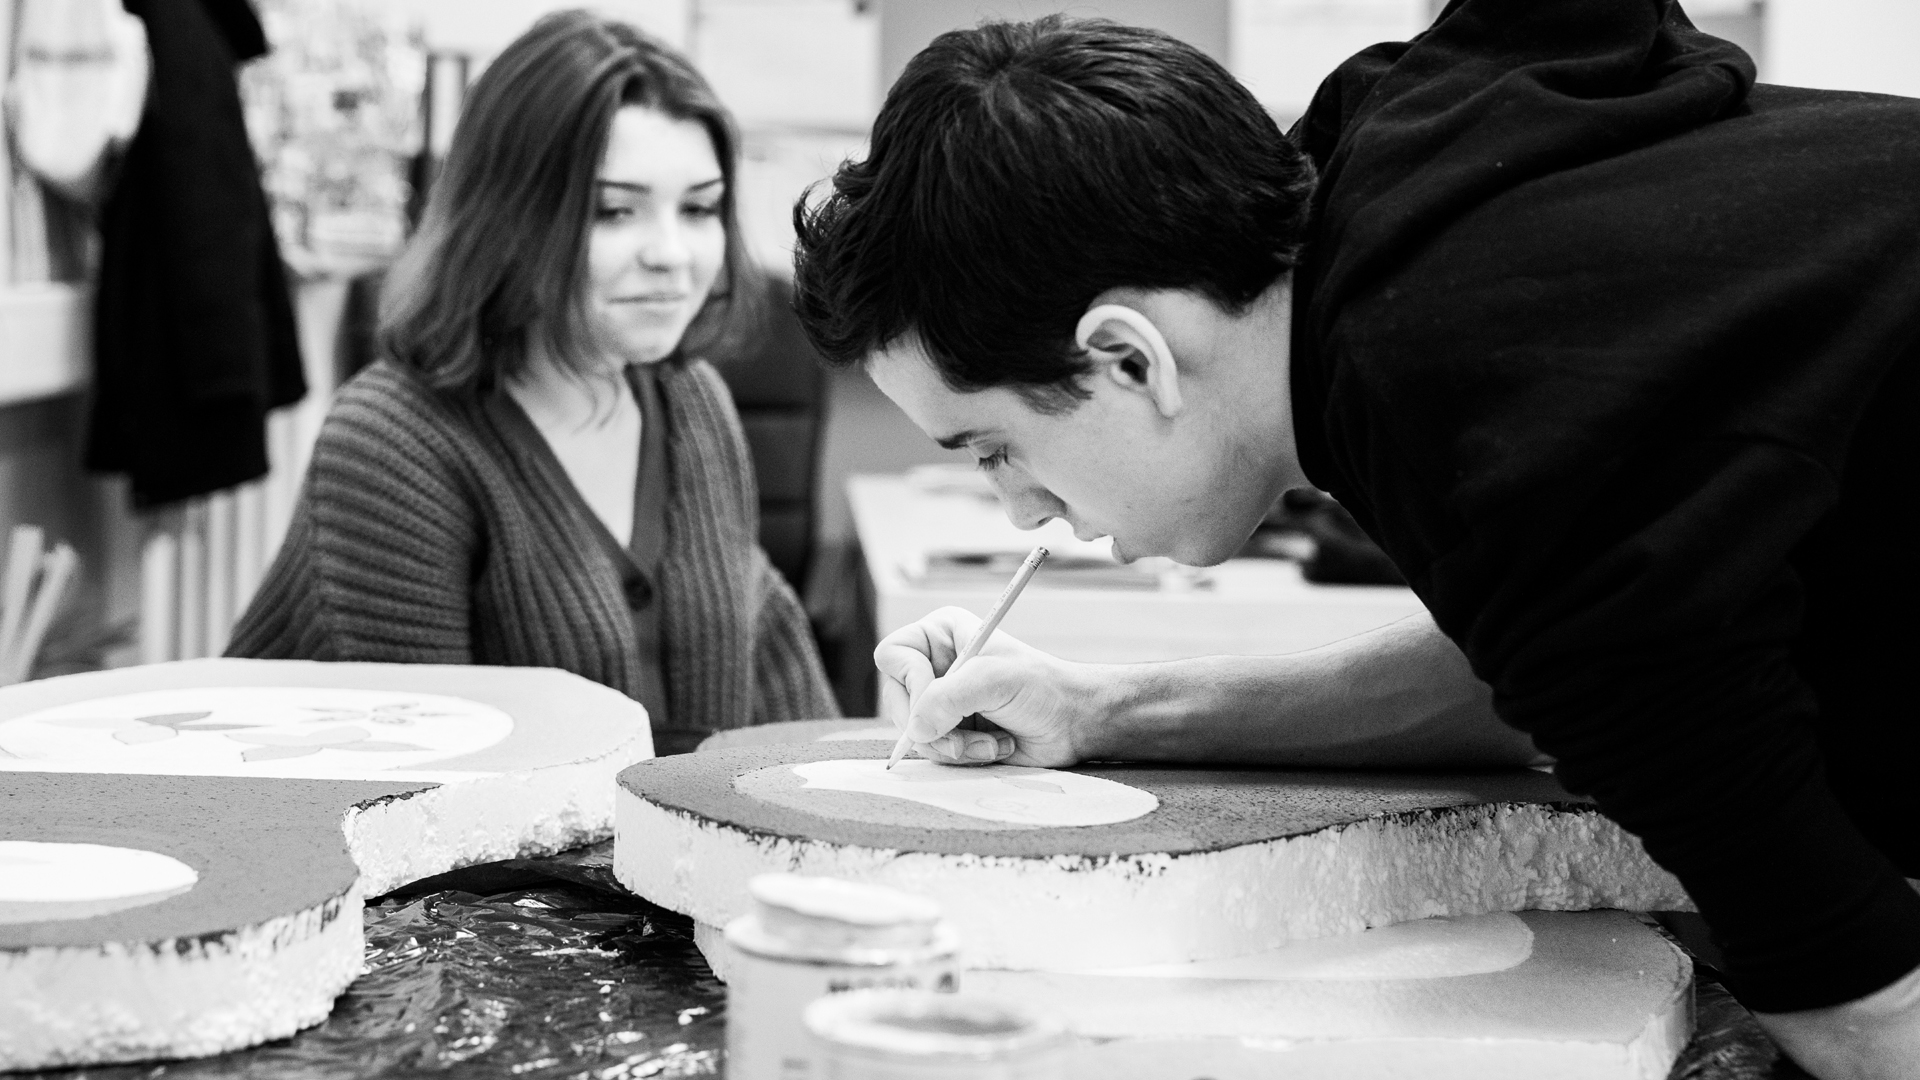 semonord-prestations-steam-header